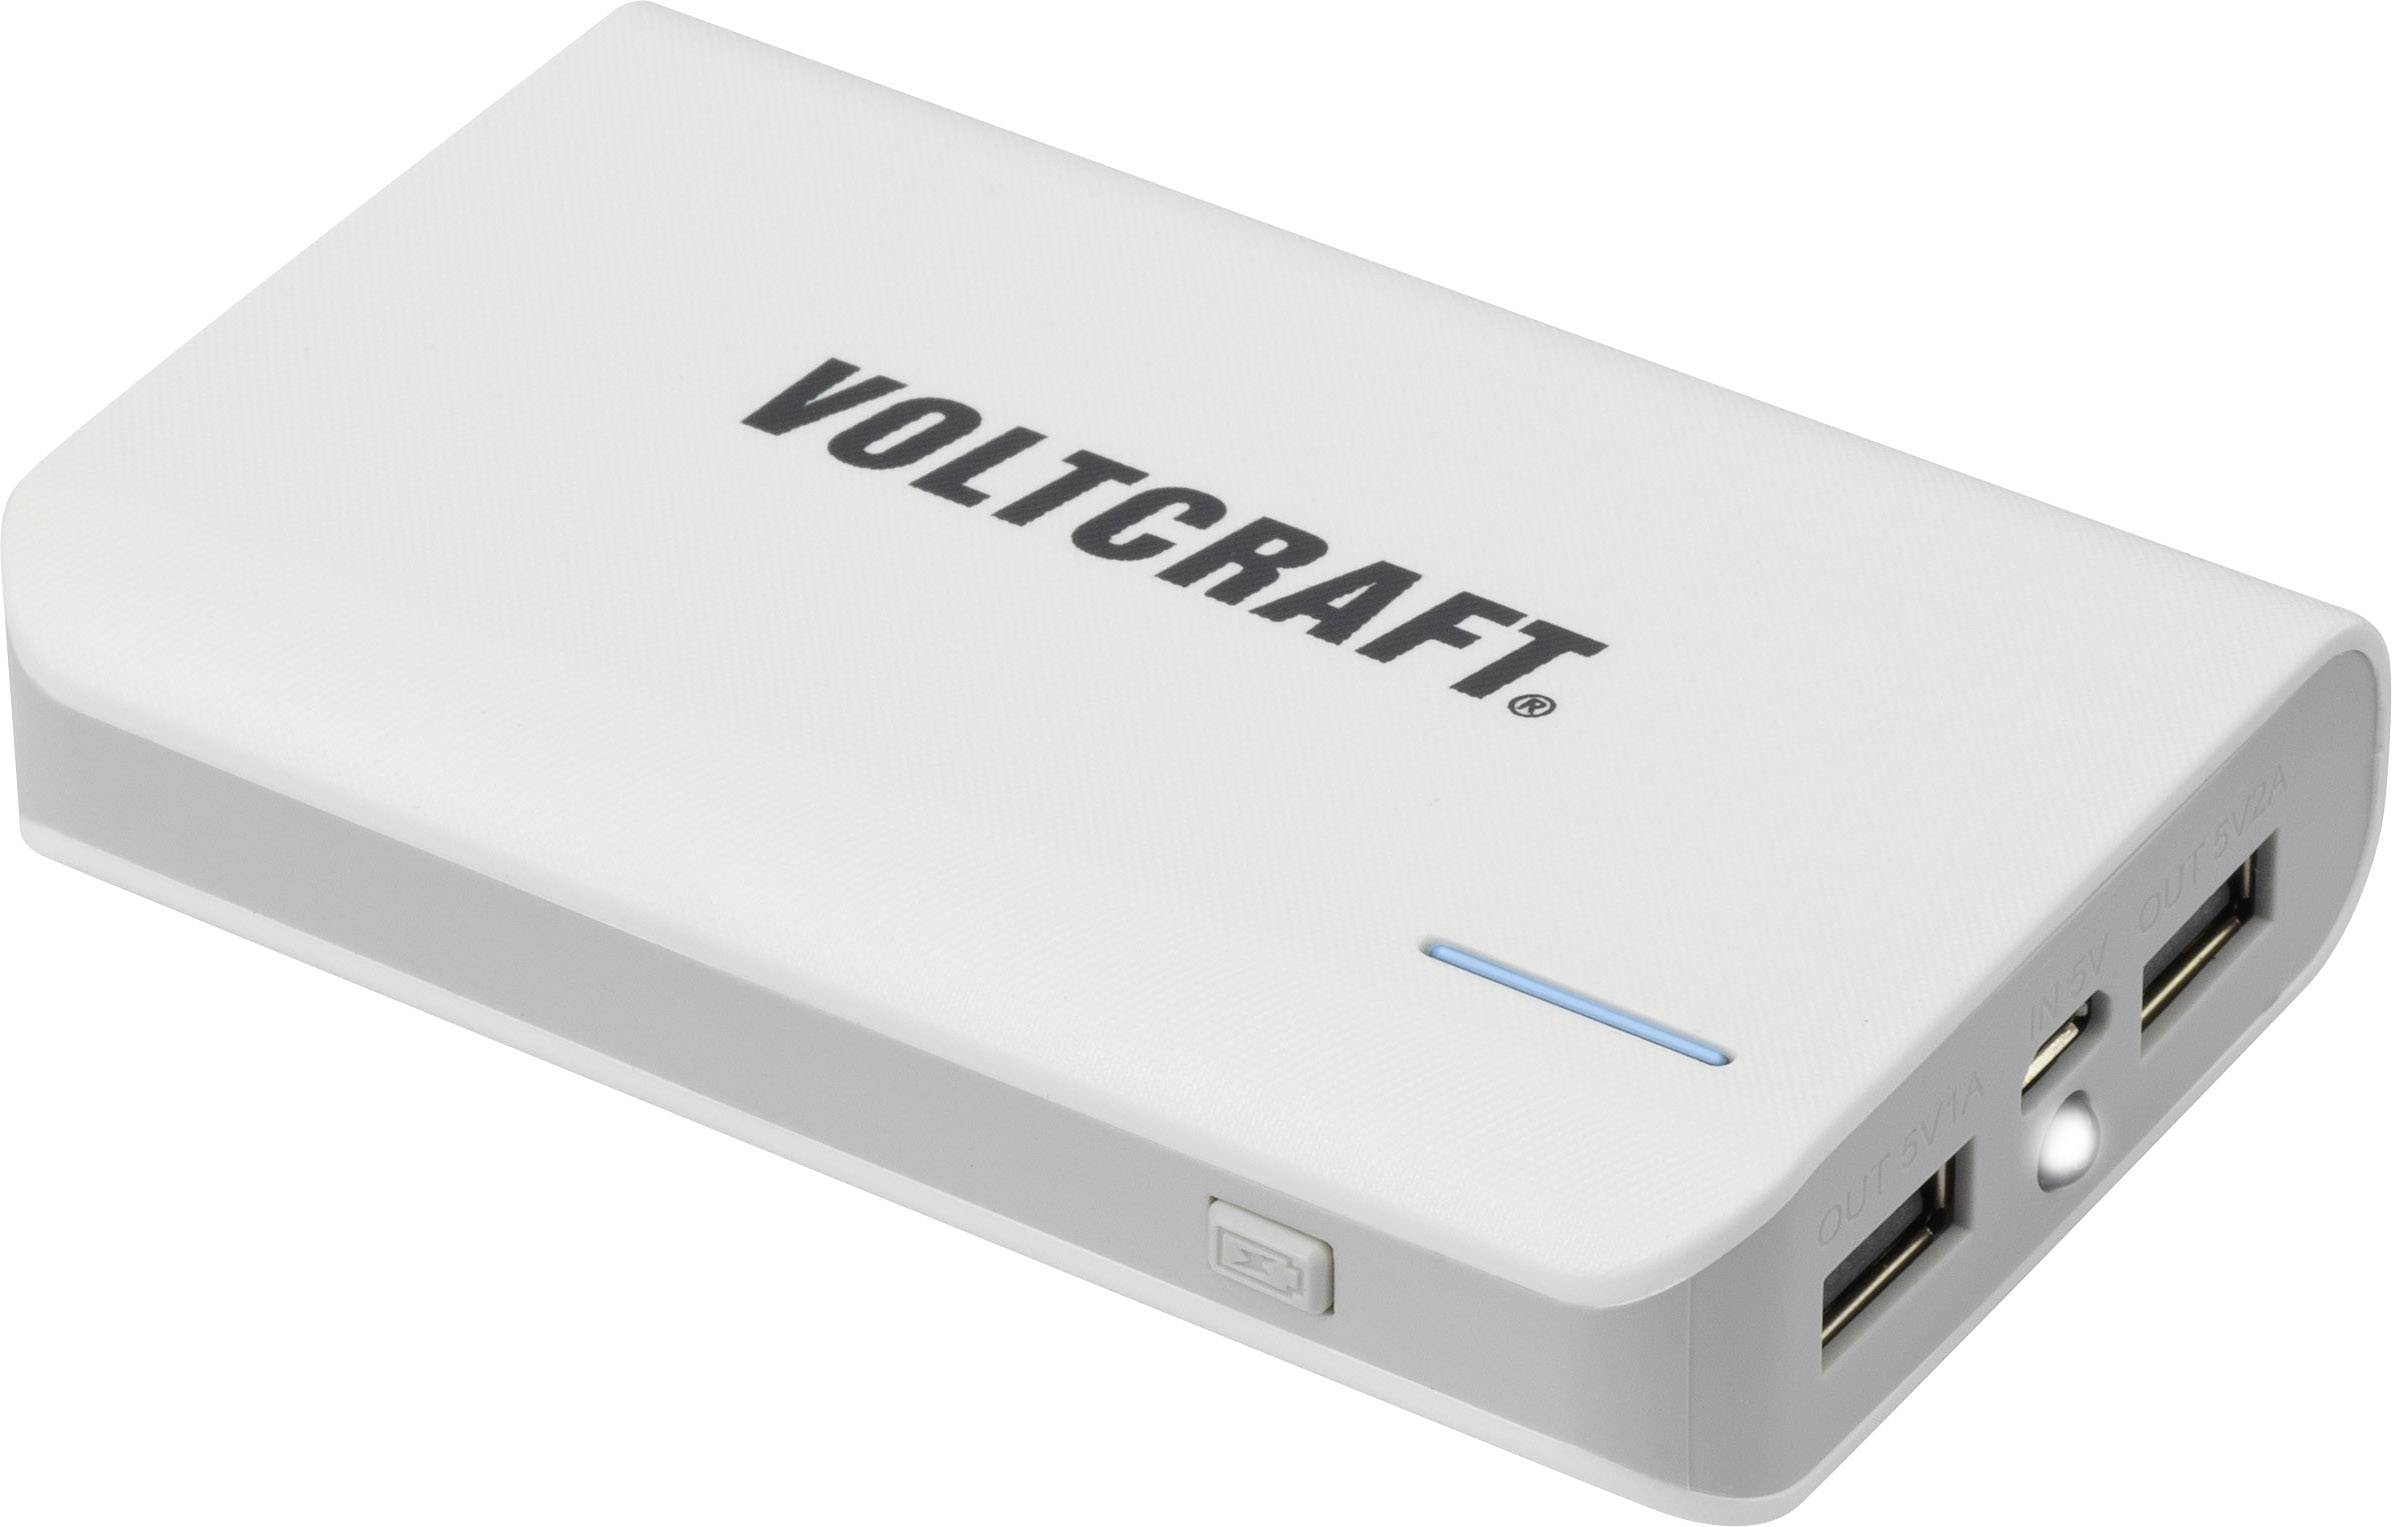 Powerbank Voltcraft PB-16, 7800 mAh